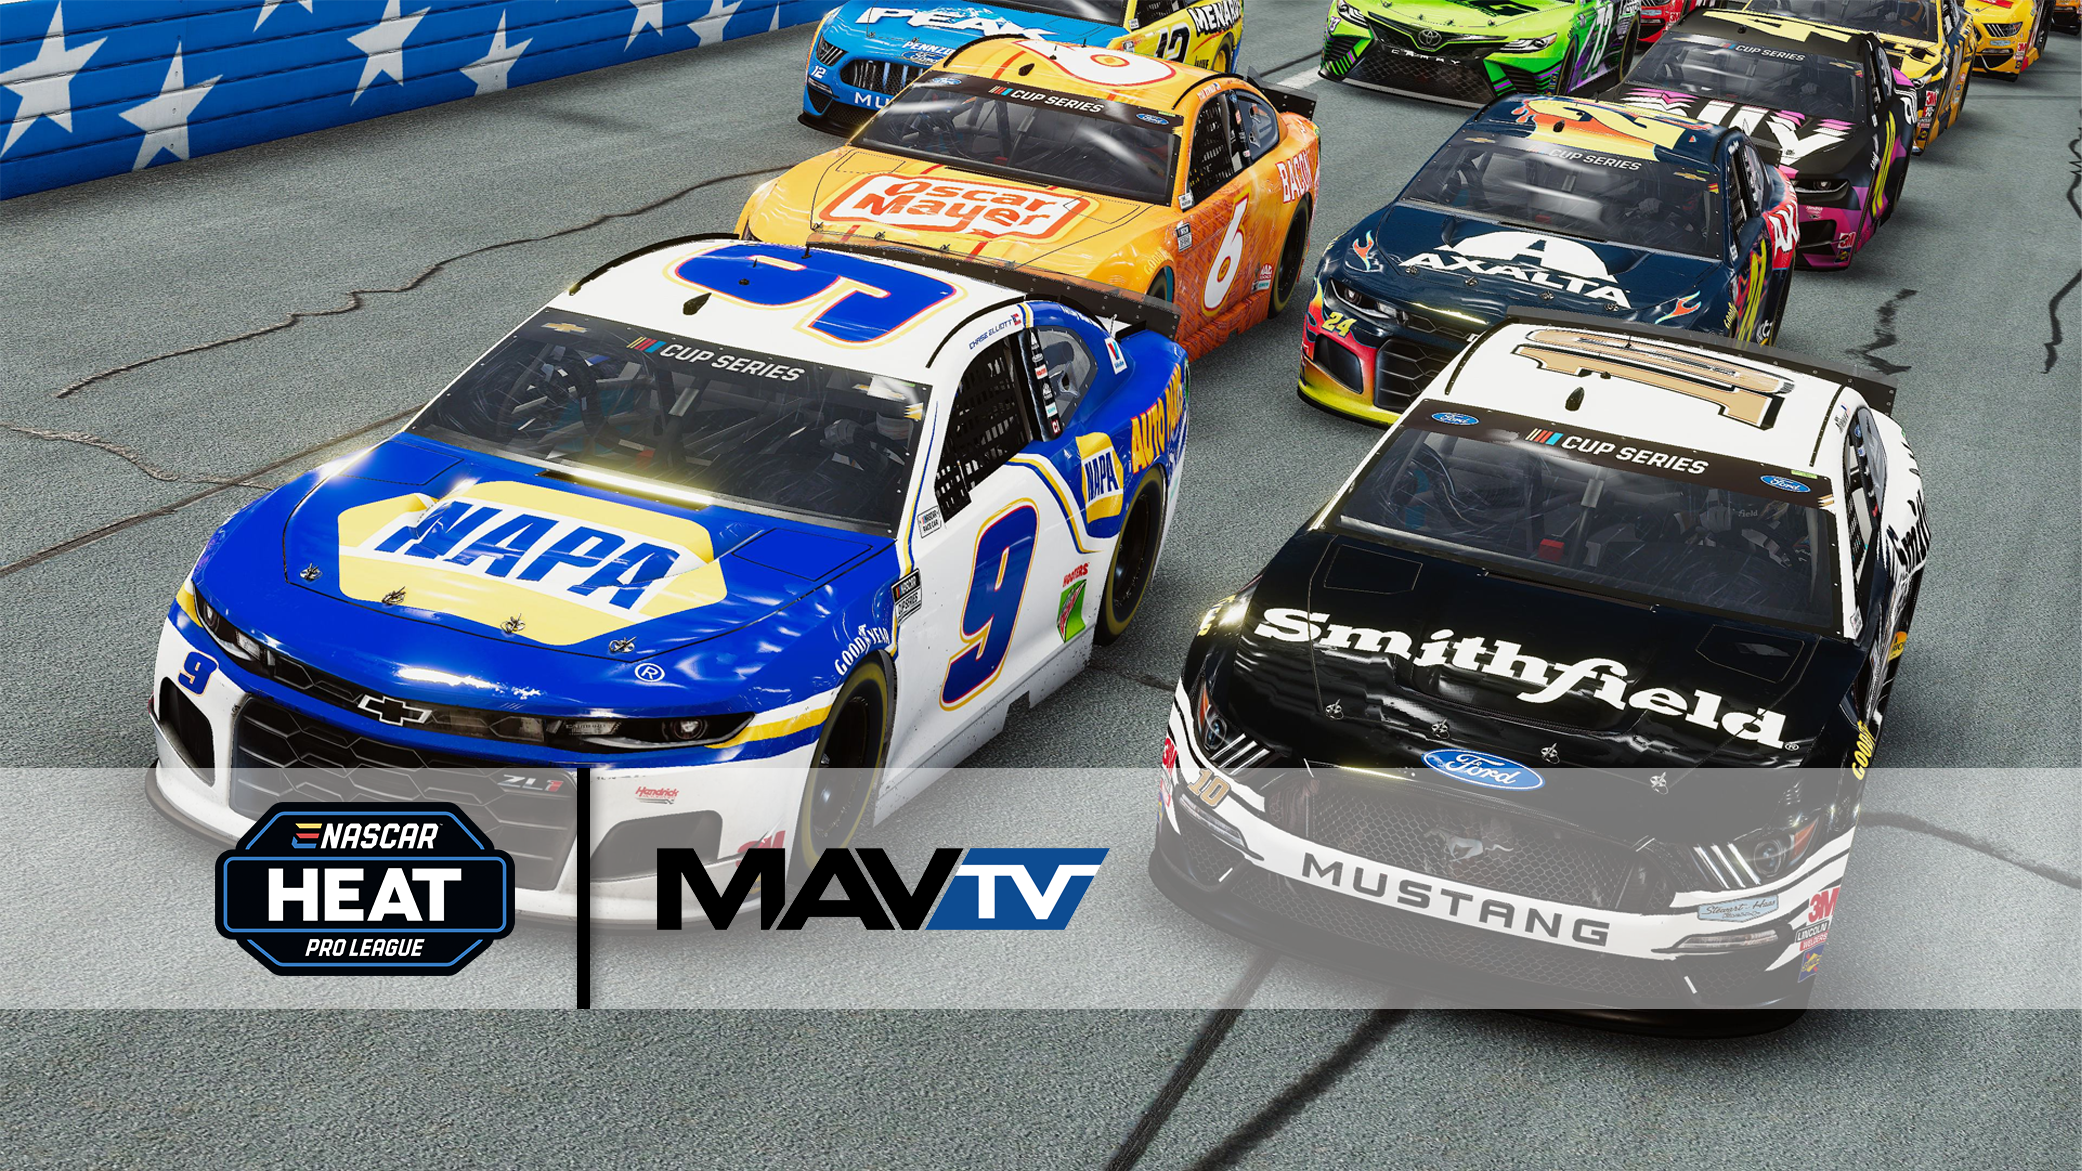 enascar heat pro league mavtv